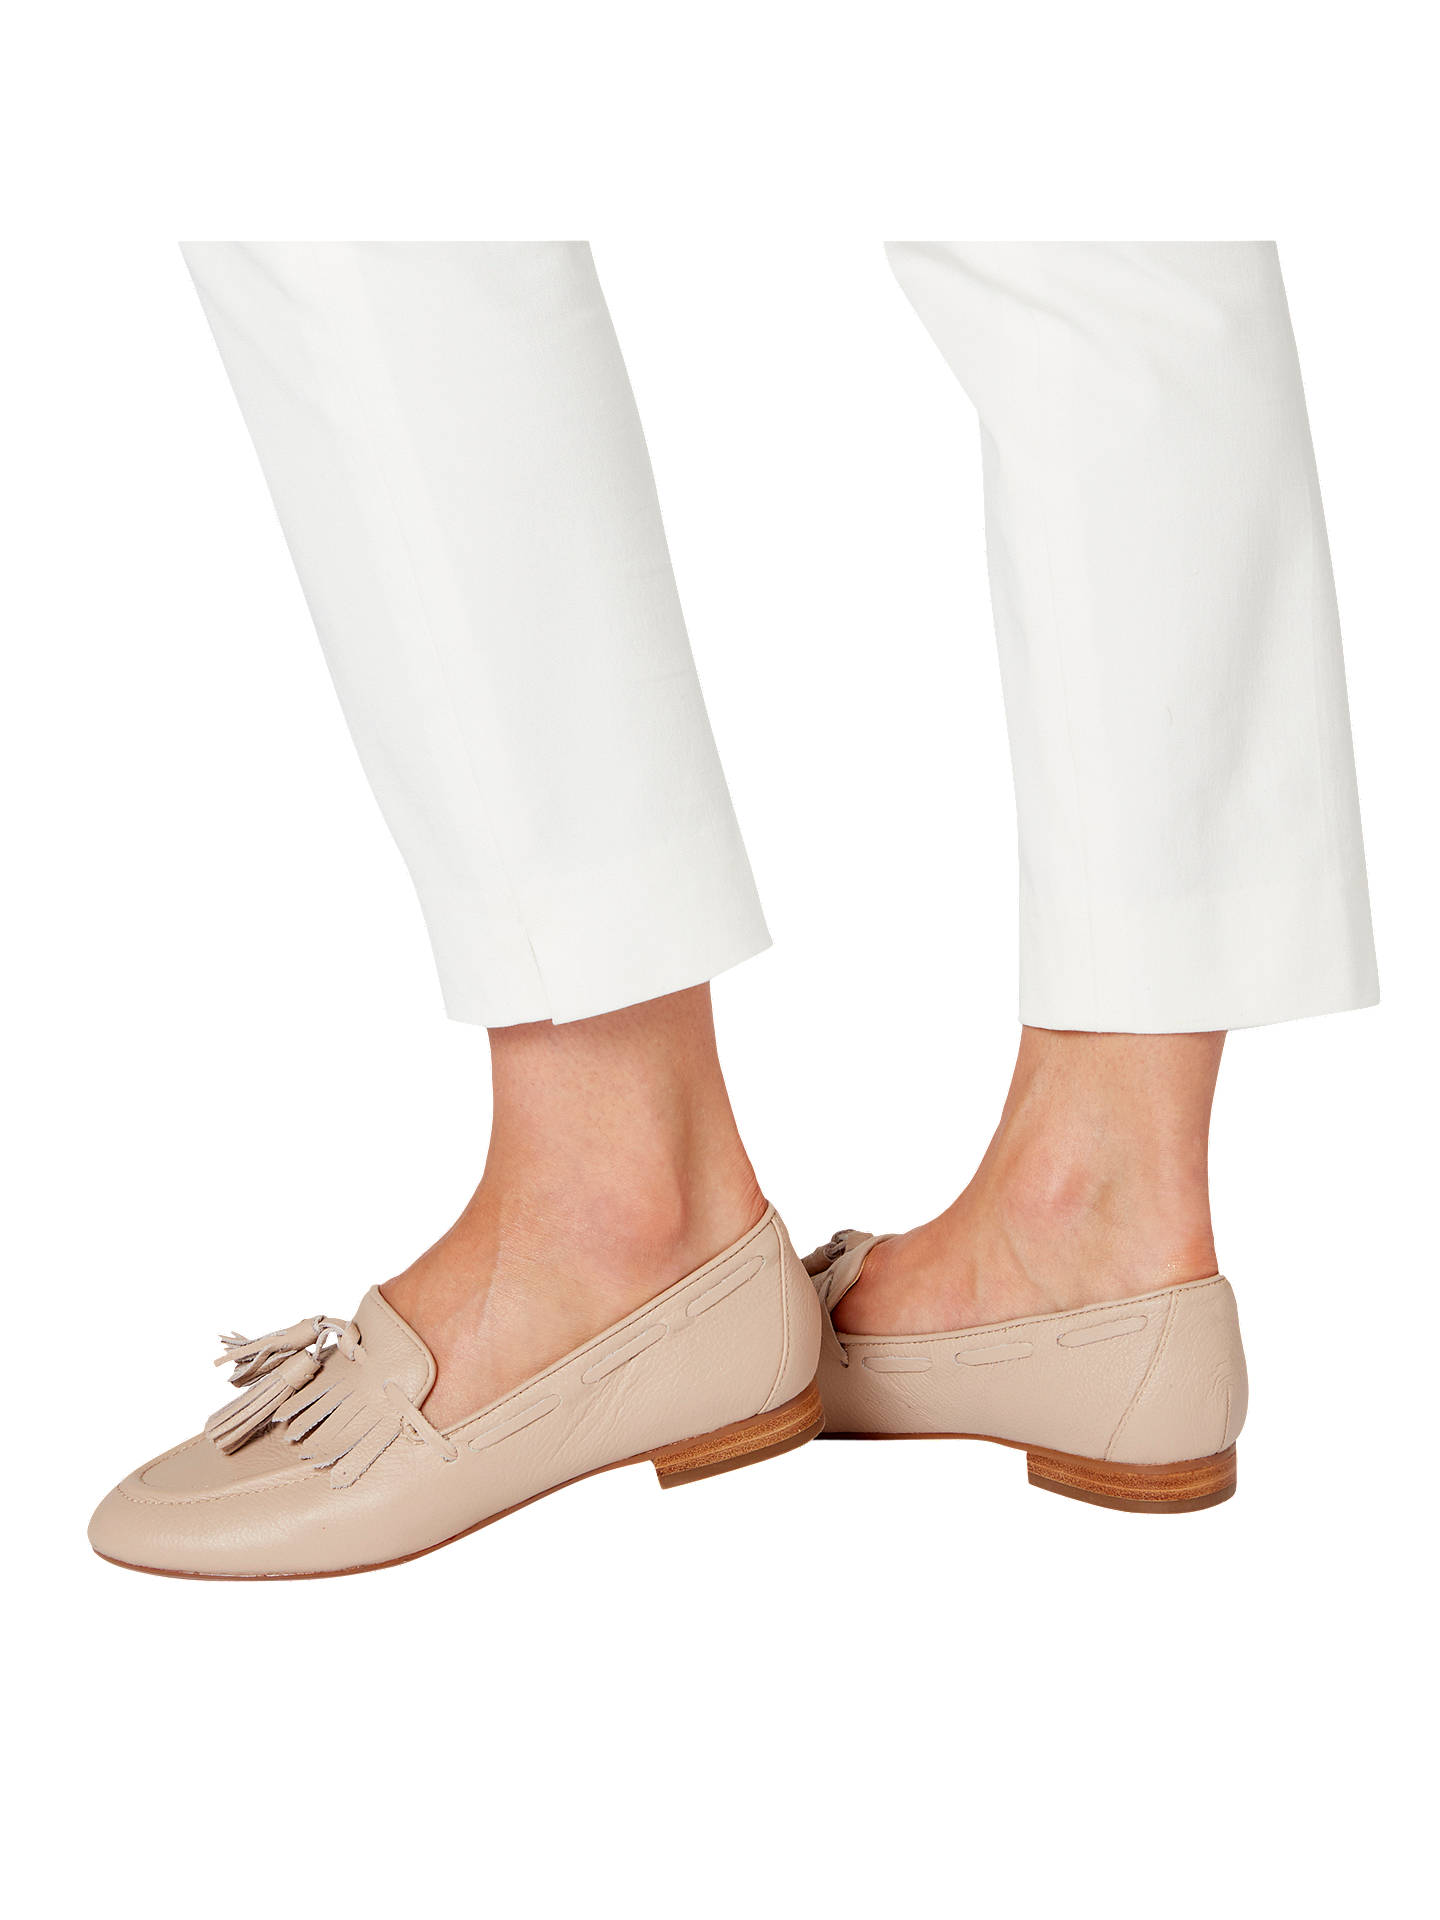 BuyDune Gianni Tassel Loafers, Nude Leather, 3 Online at johnlewis.com